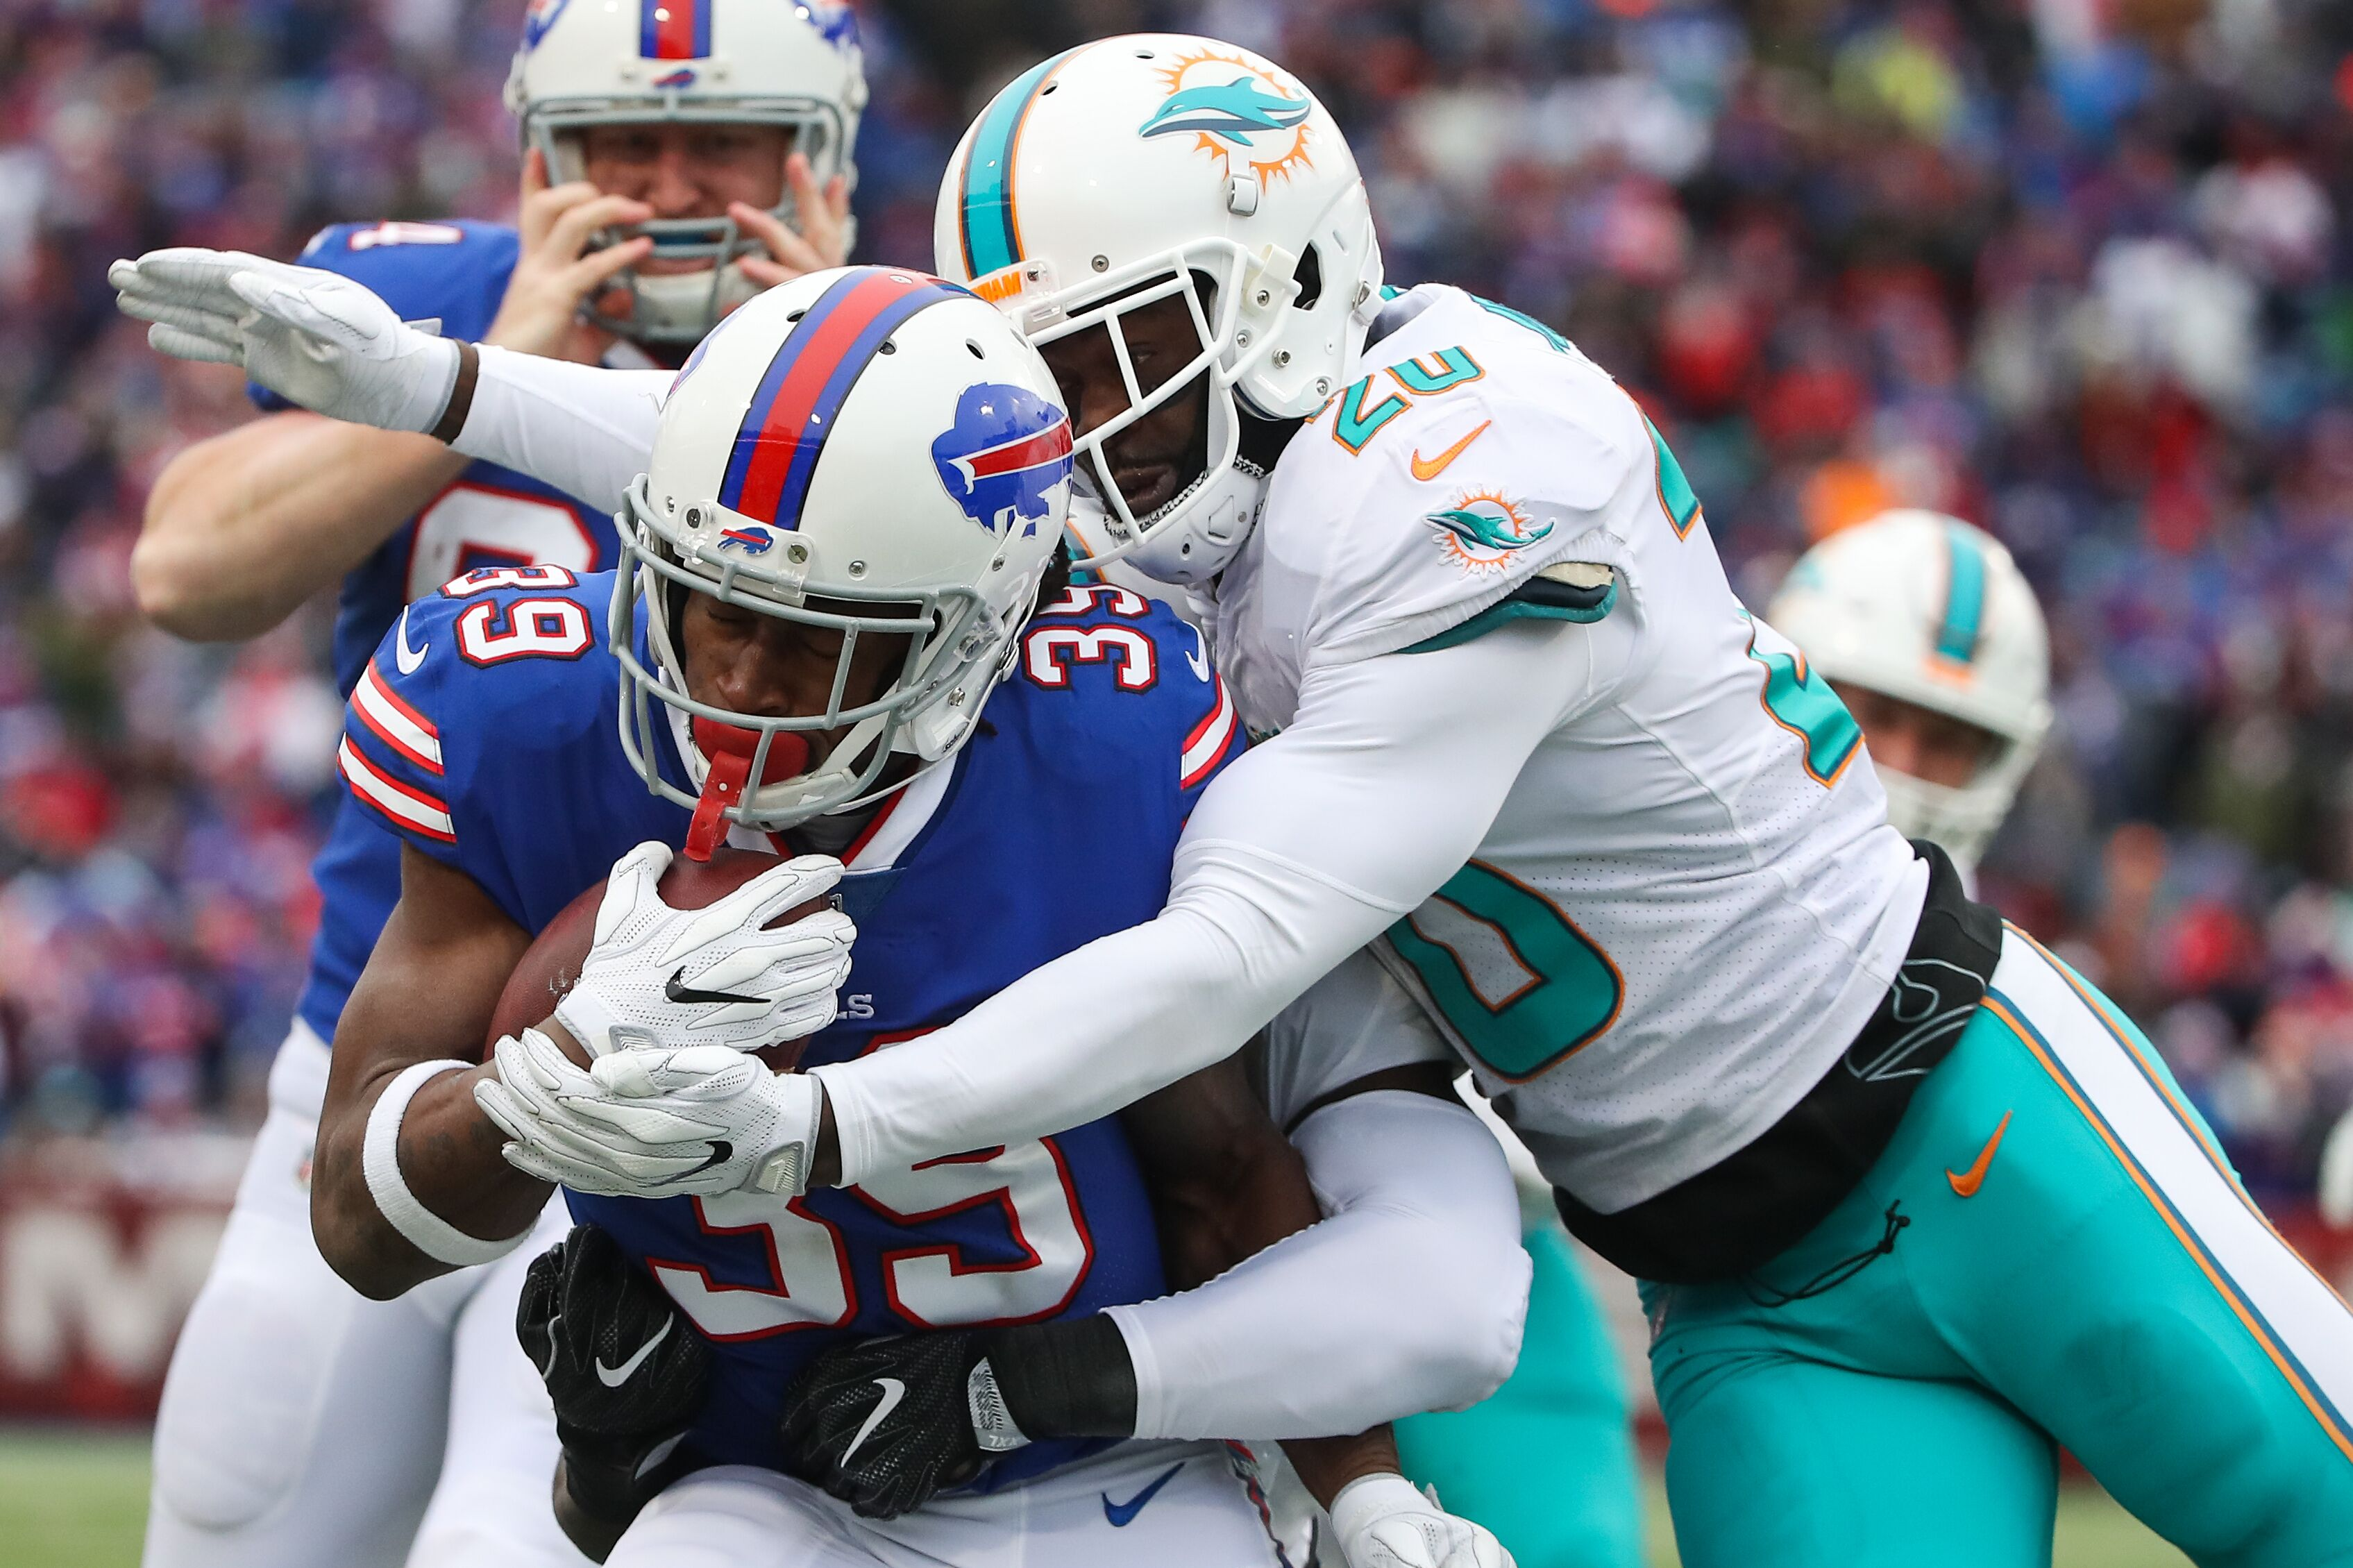 894268890-miami-dolphins-v-buffalo-bills.jpg